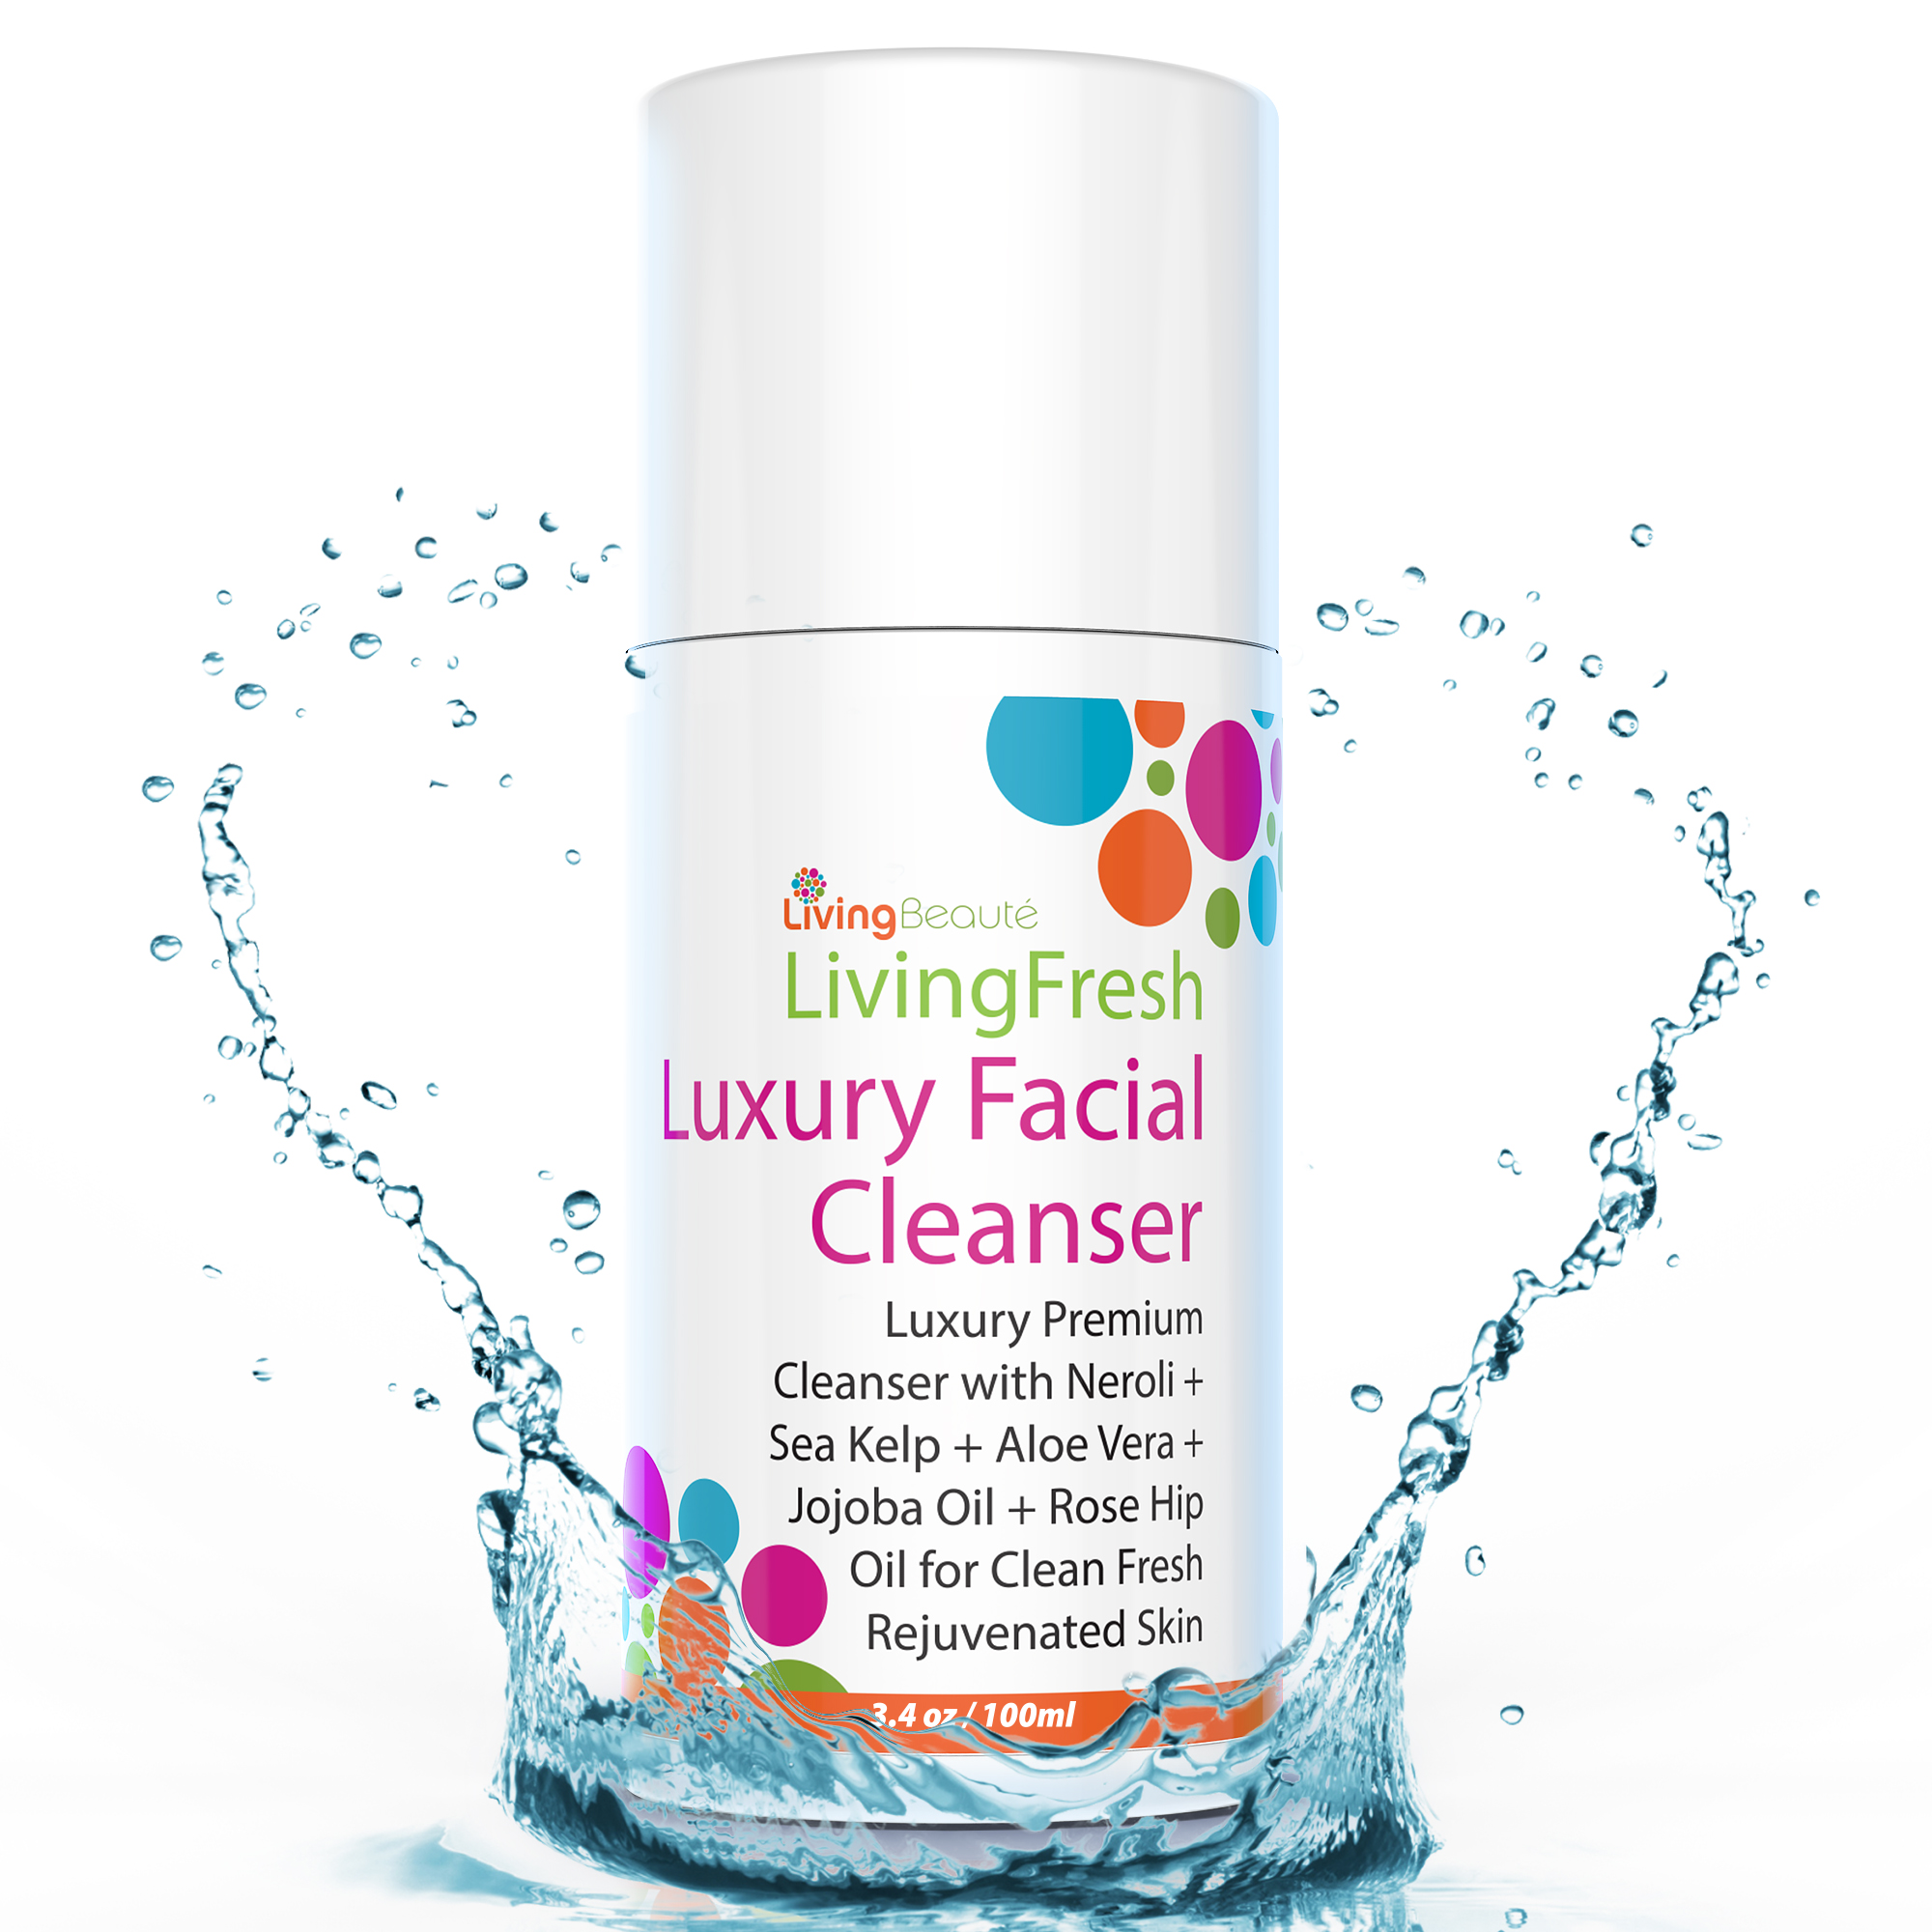 6mod-LivingFresh-Cleanser-bottle-in-a-water-splash